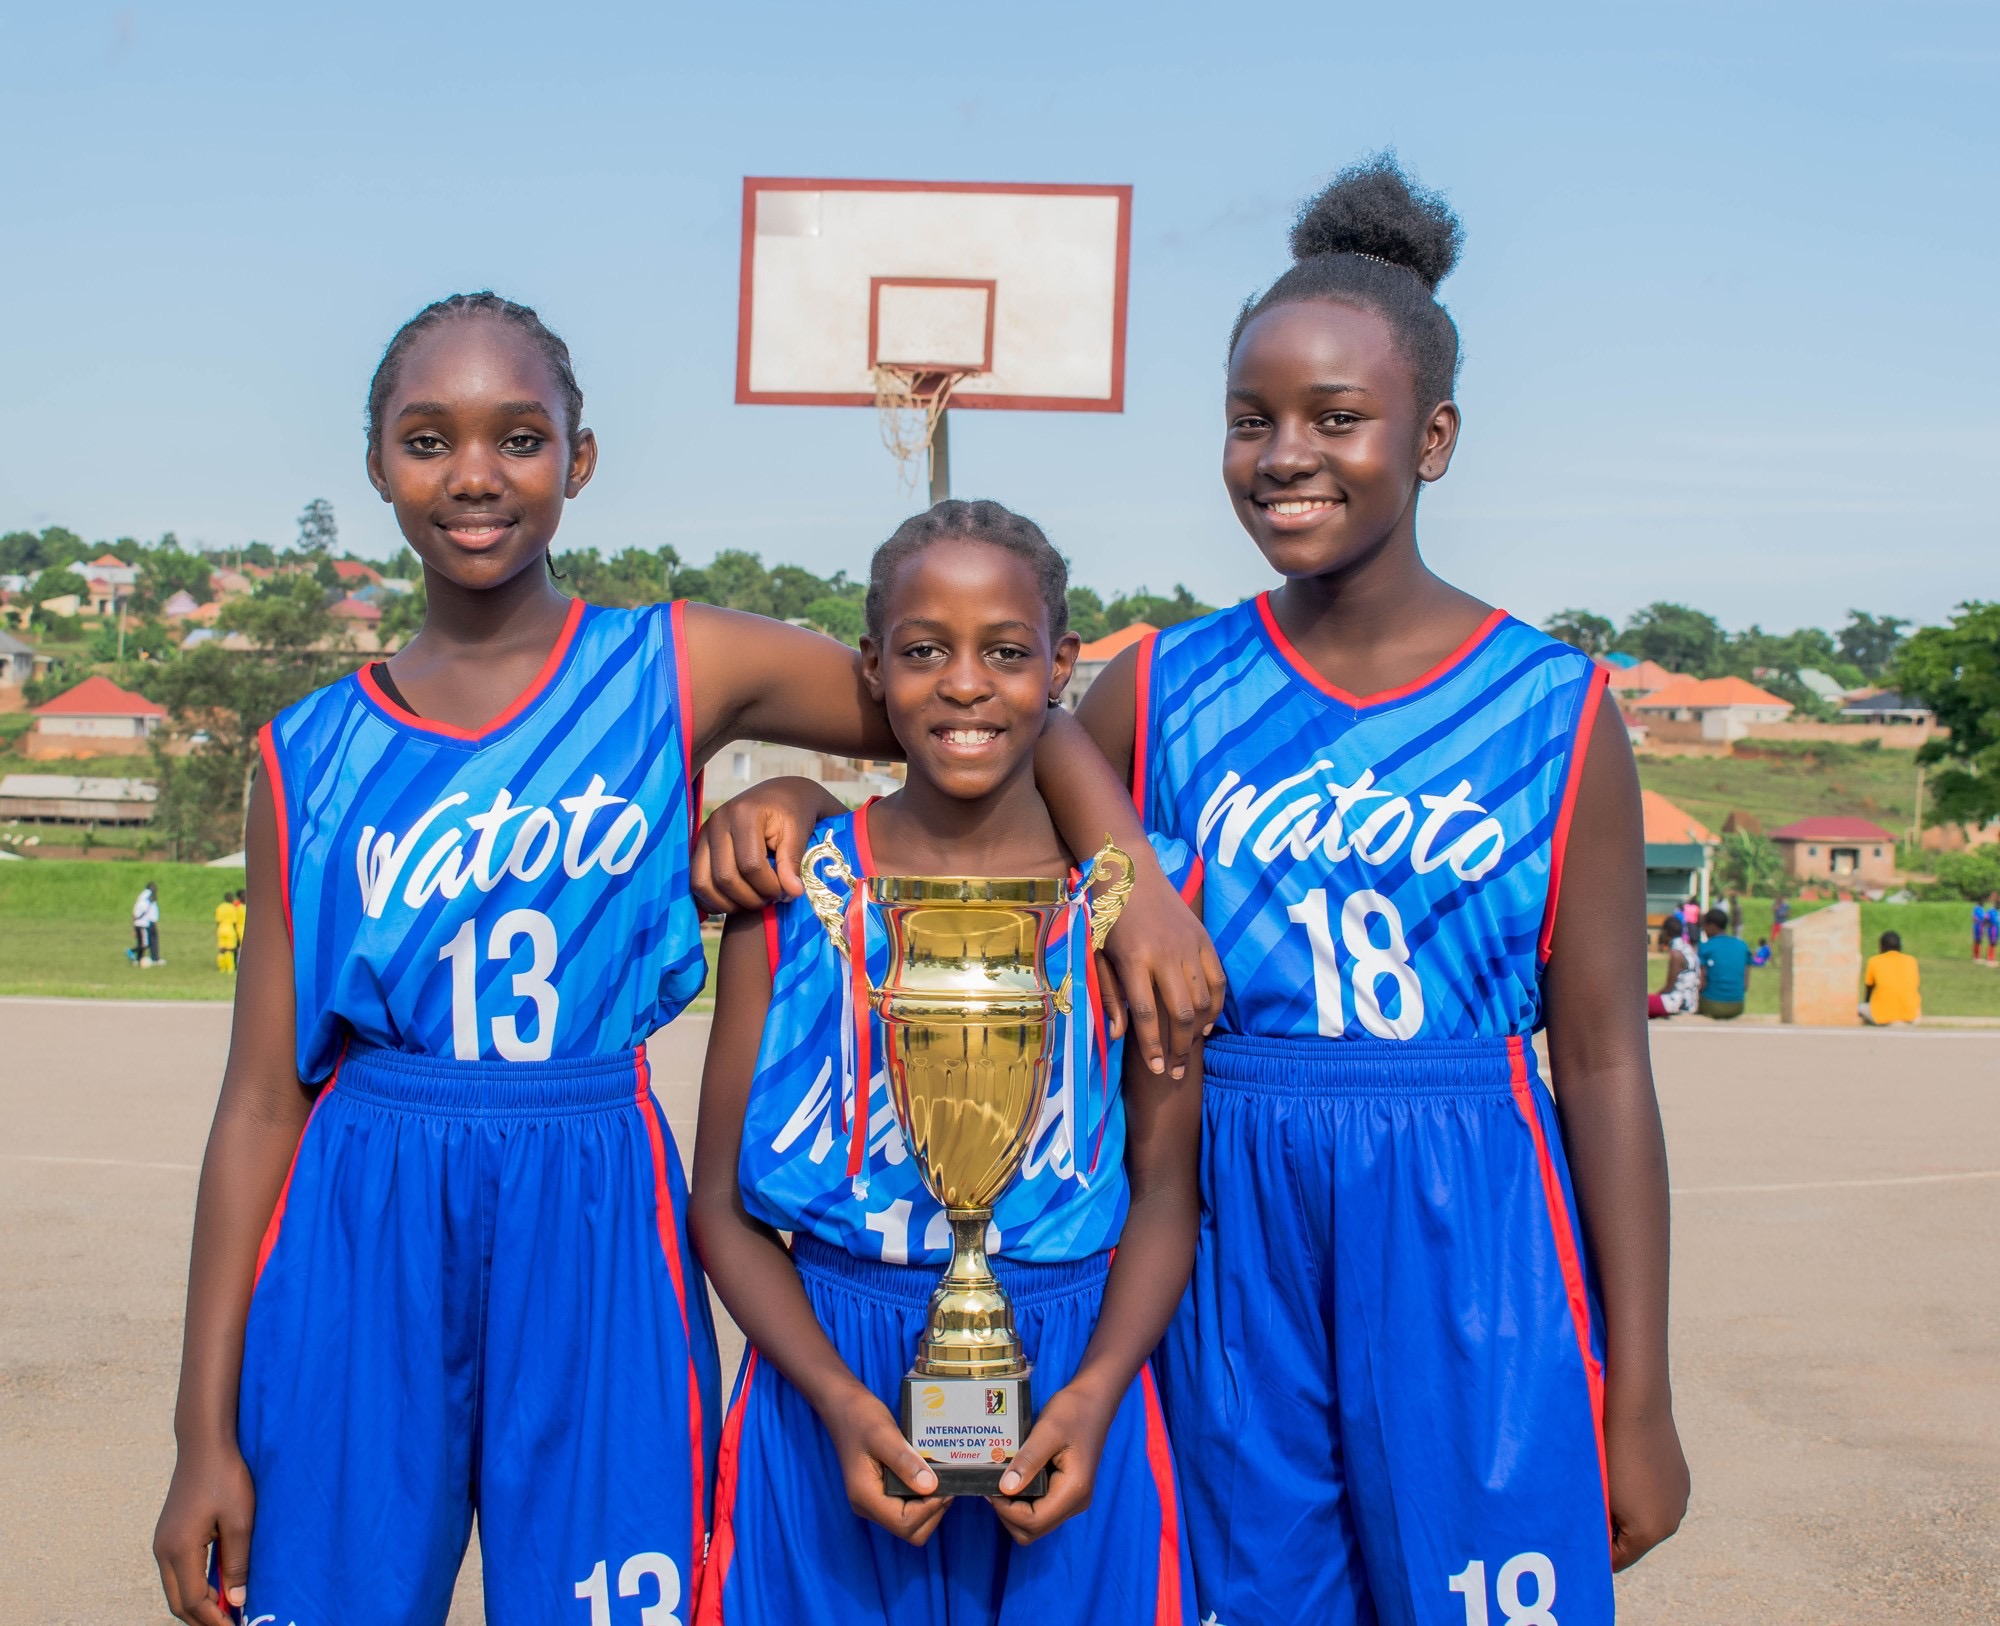 Watoto Girls Basketball Team